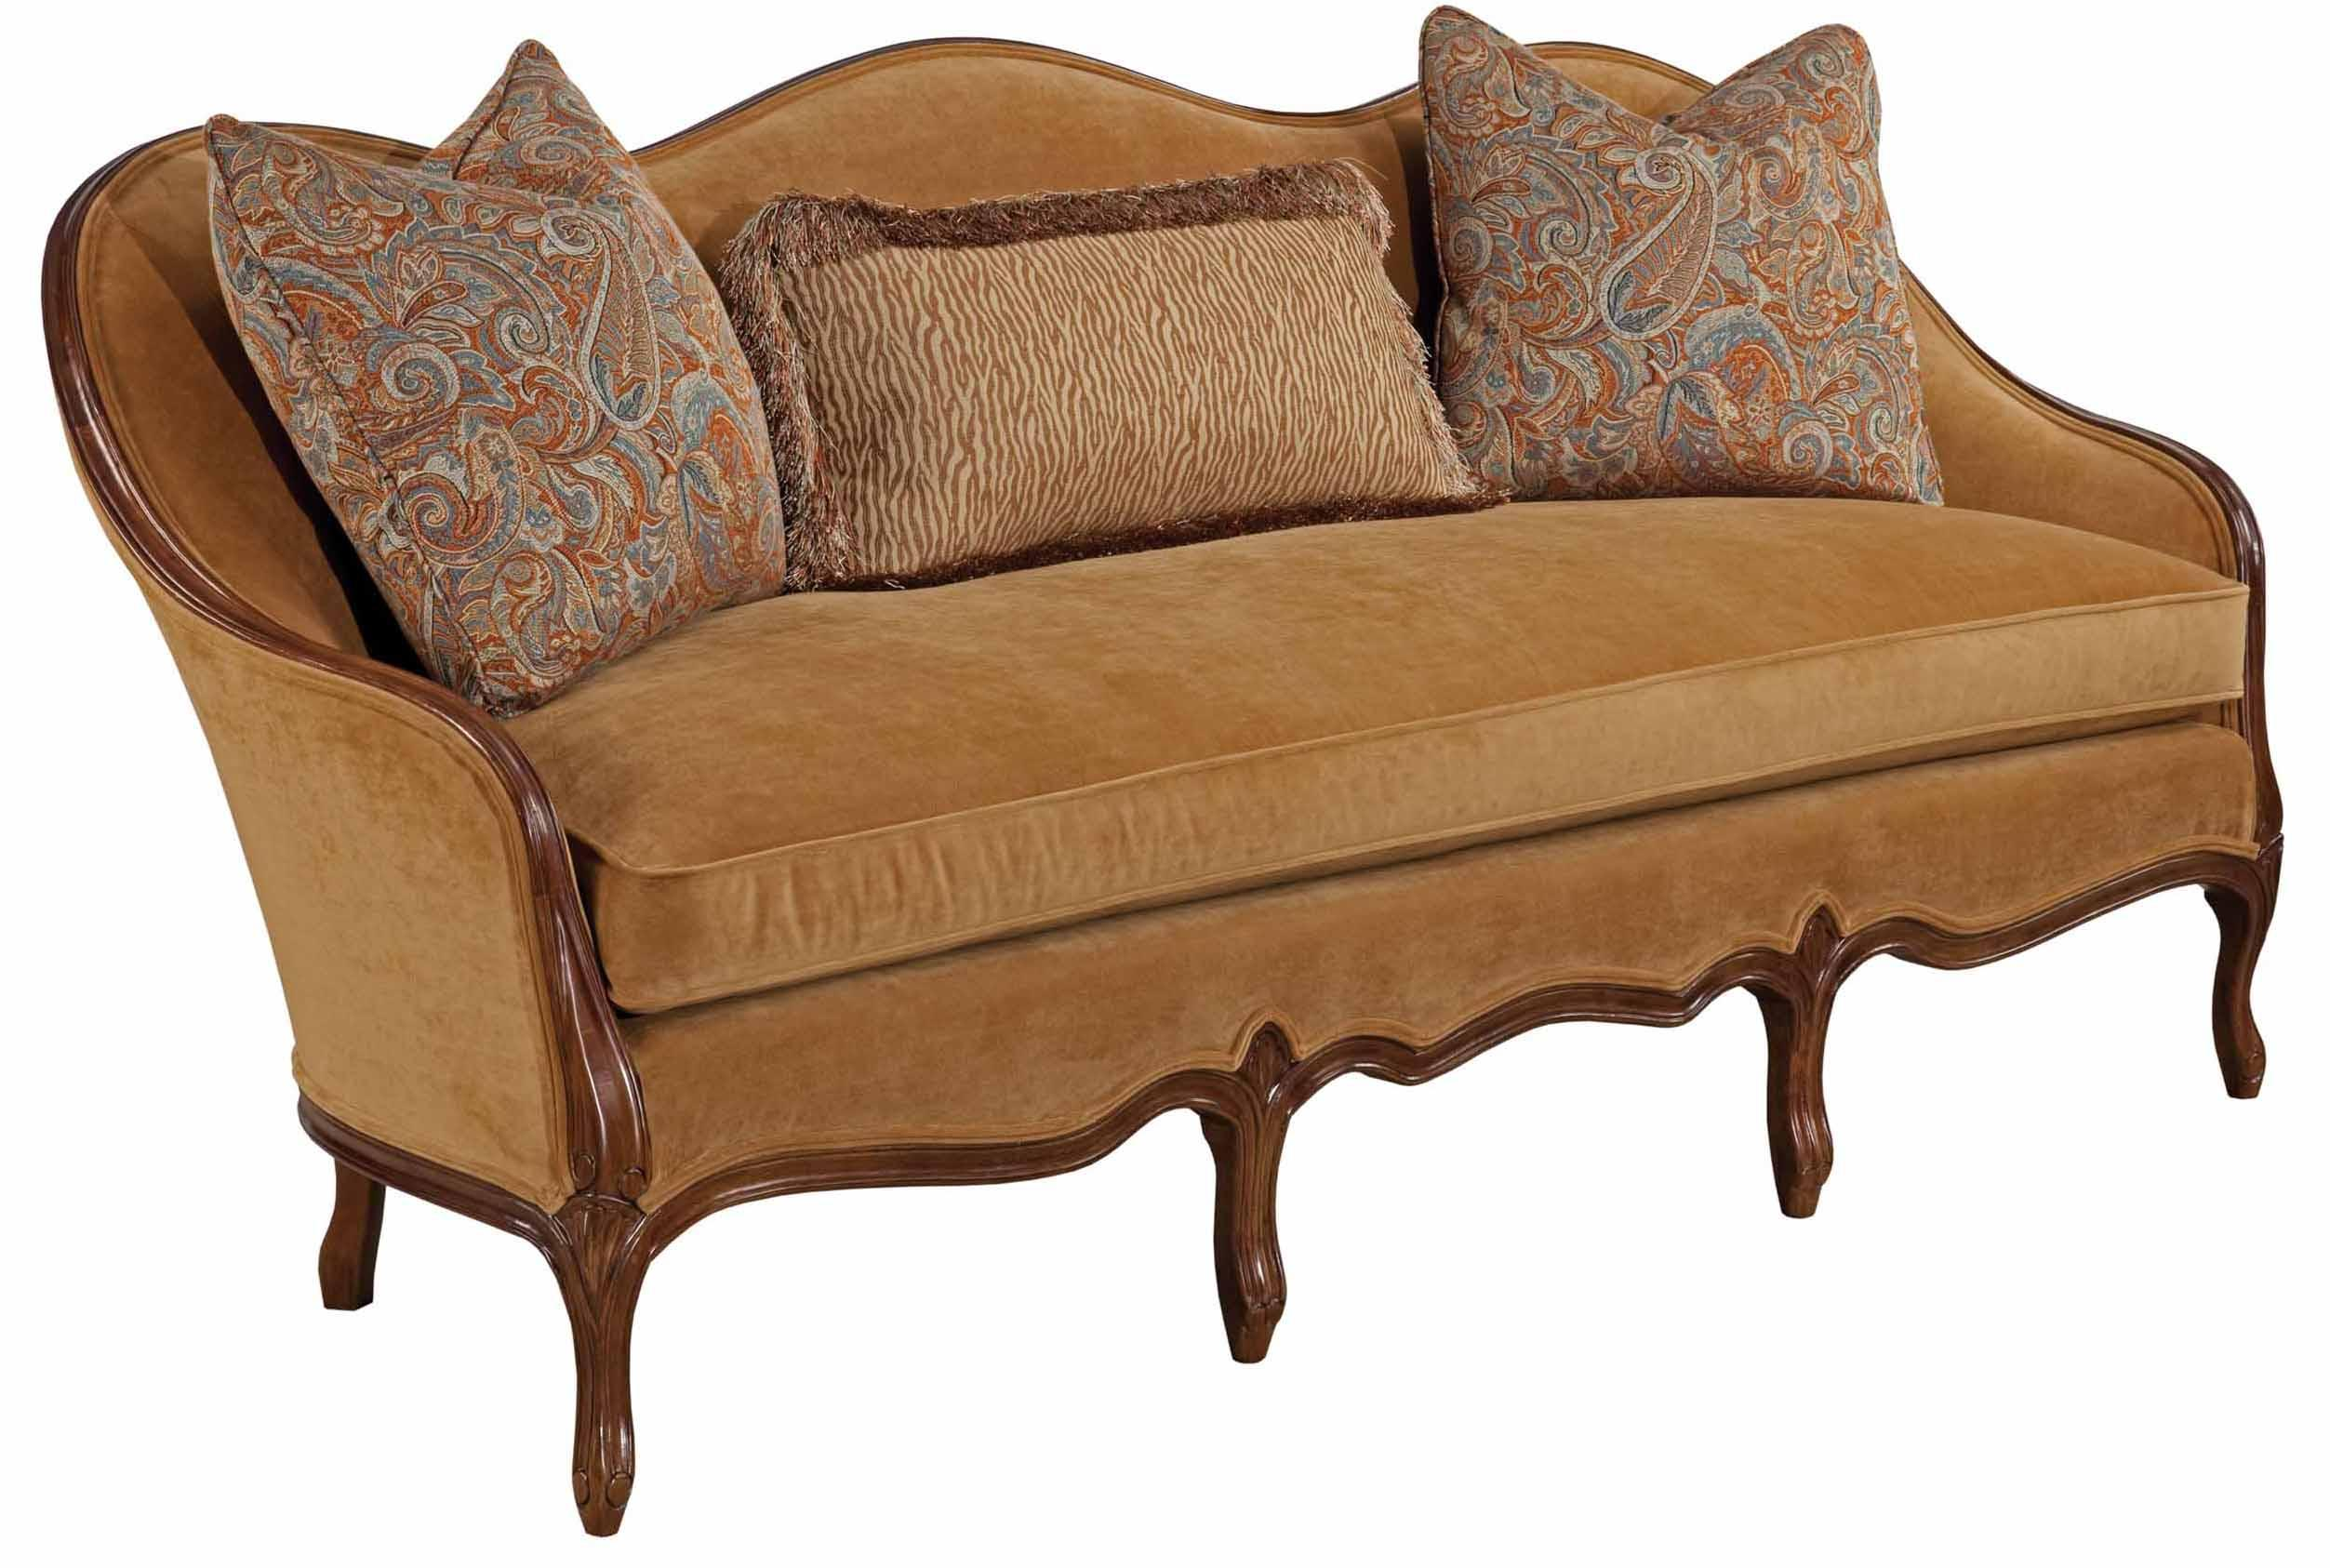 Traditional French Sofa with Exposed Wood Camel Back and Loose